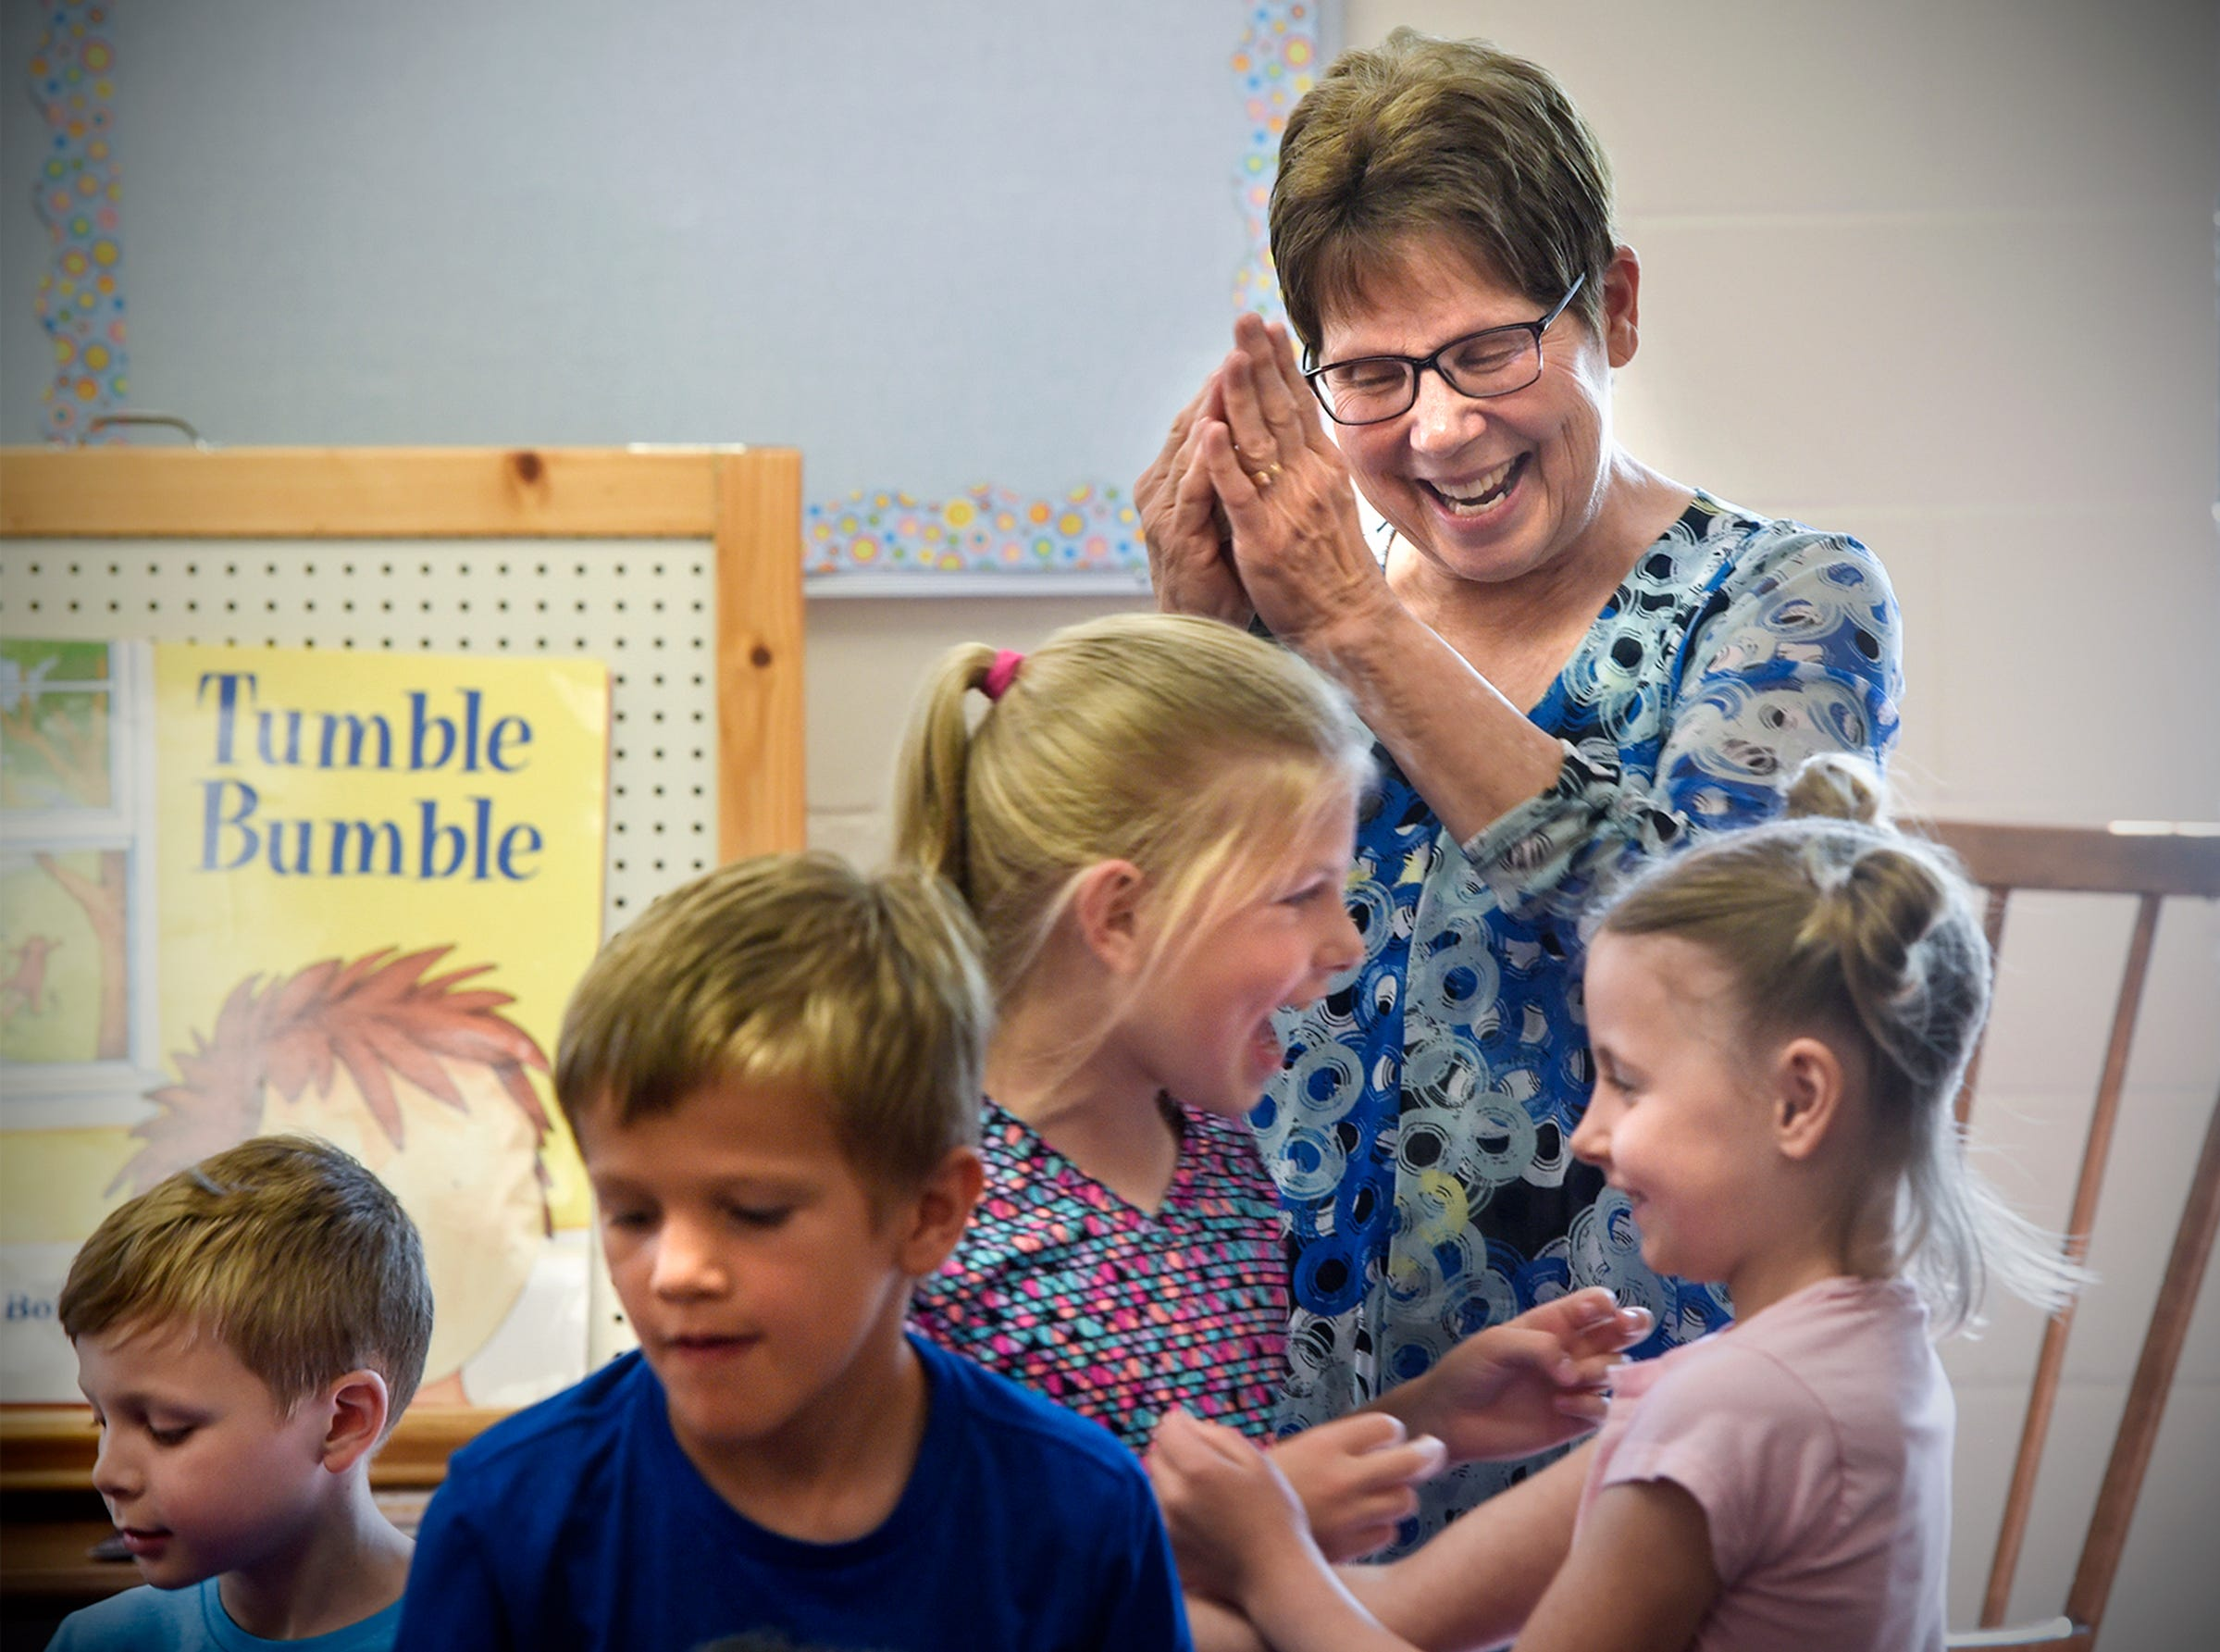 St. Boniface School first-grade teacher Carol Sell smiles while leading students through a game during her last day of class Thursday, May 31, in Cold Spring. Sell has been a teacher at St. Boniface for 45 years.